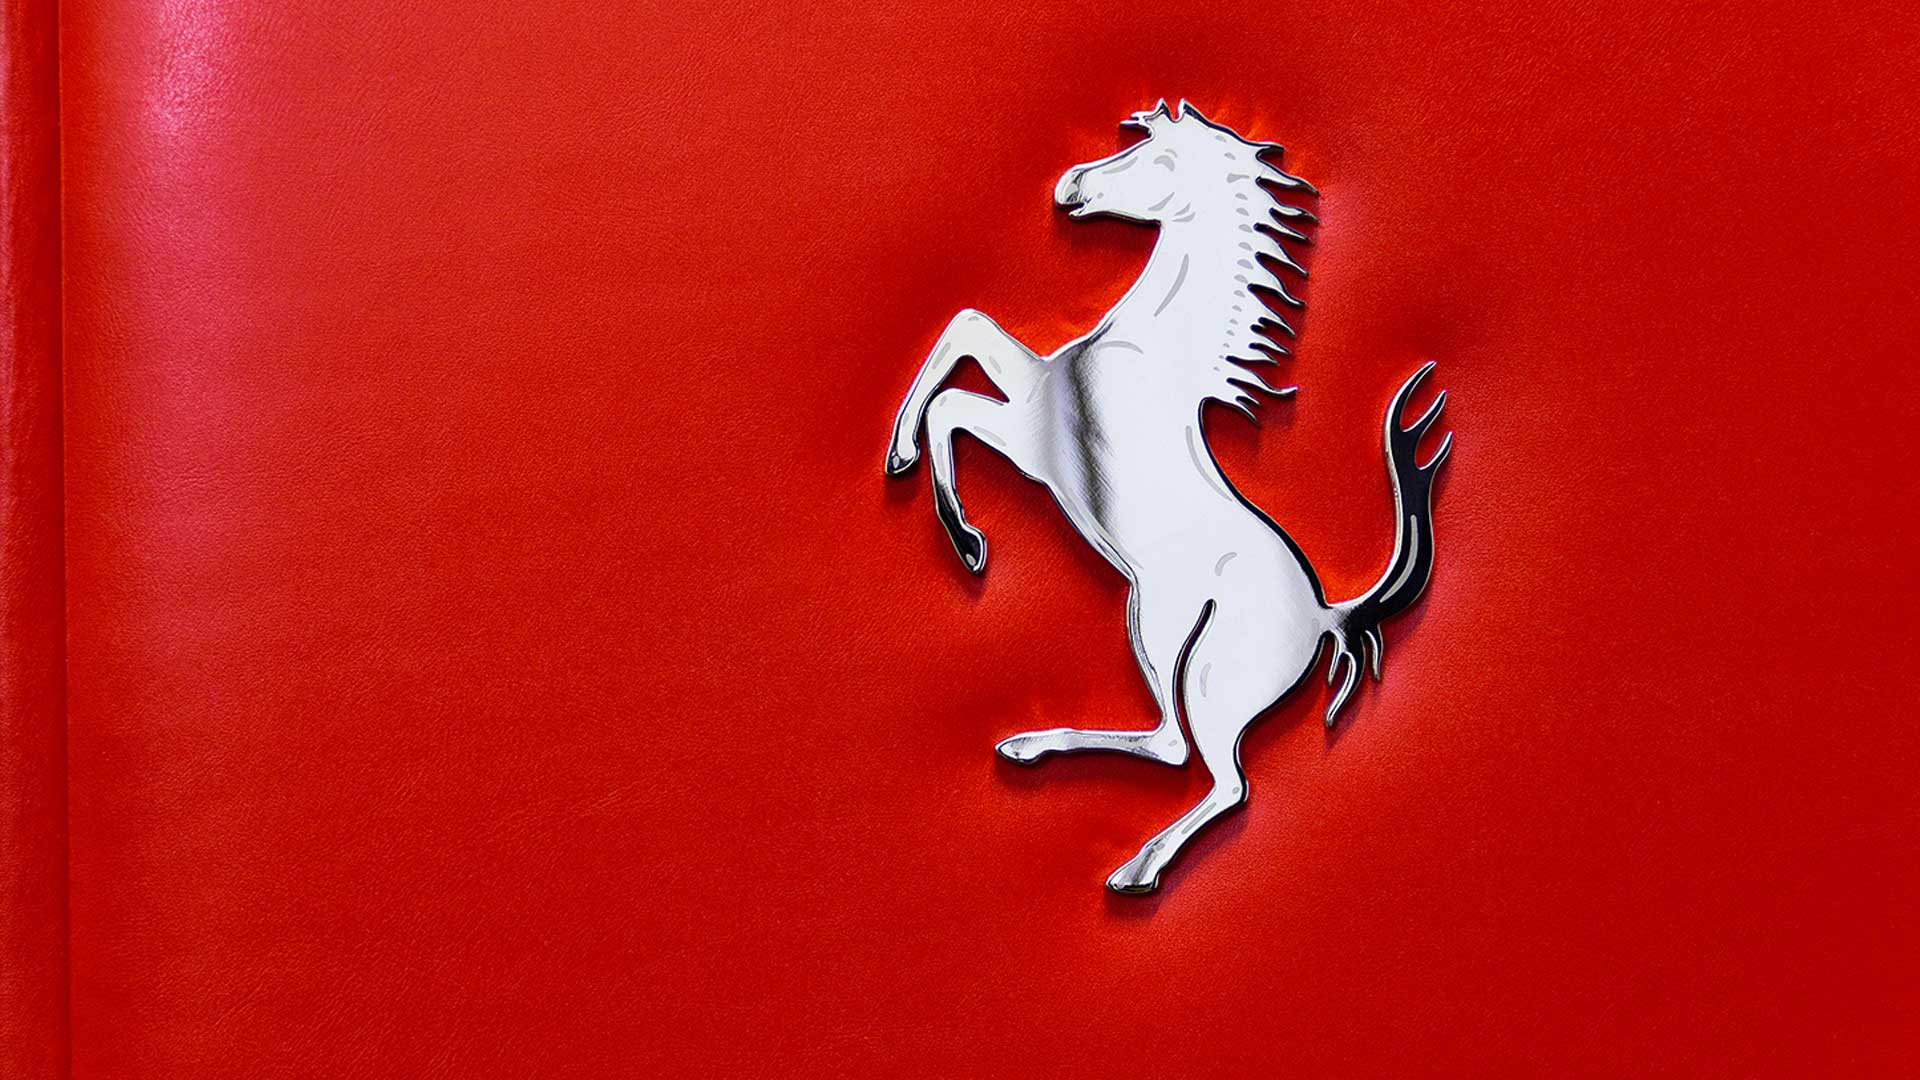 The Official Ferrari Opus The Story Of The Worlds Most Desirable